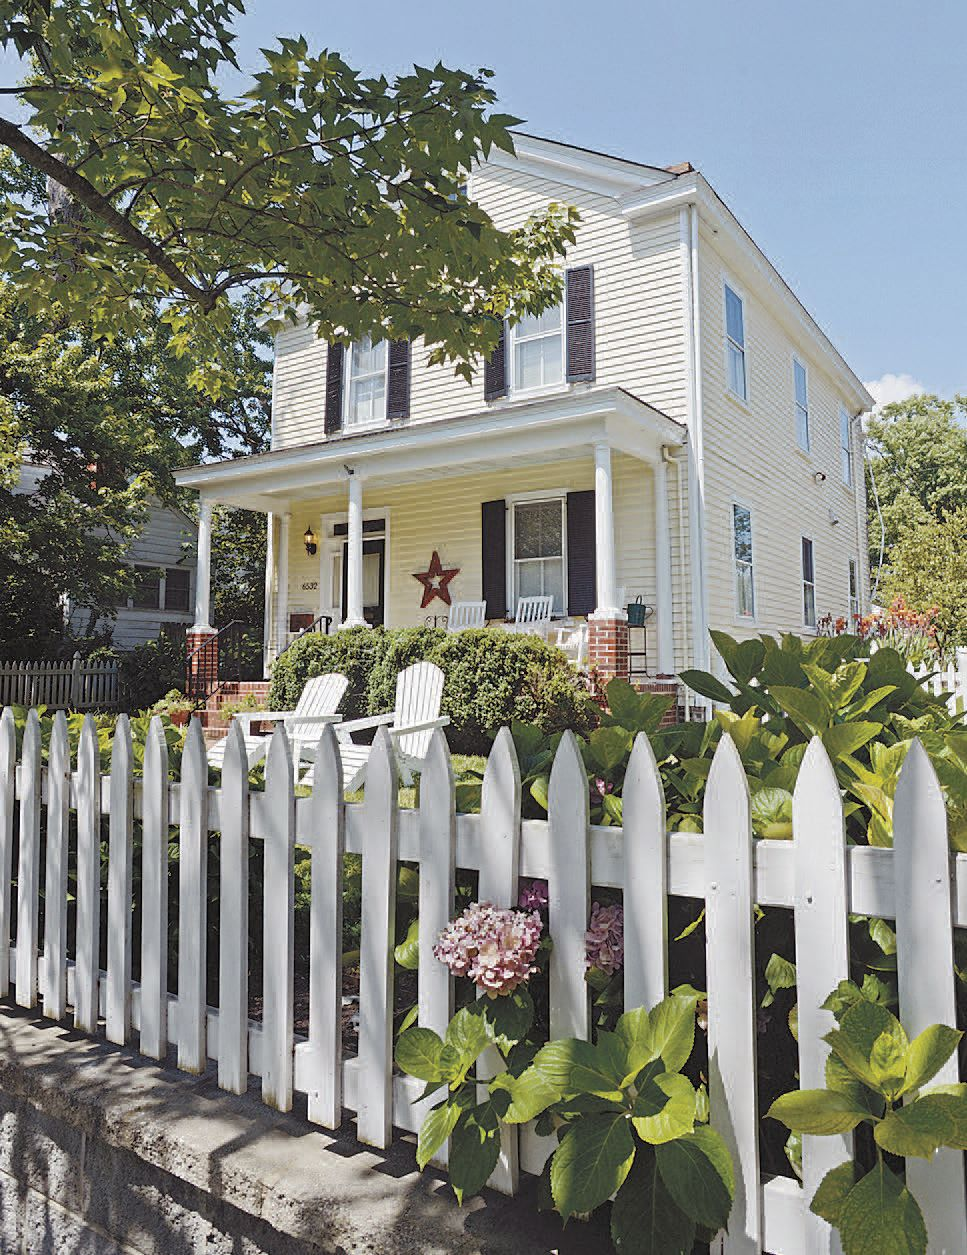 Westhampton Heights: \'A great neighborhood for young families and ...